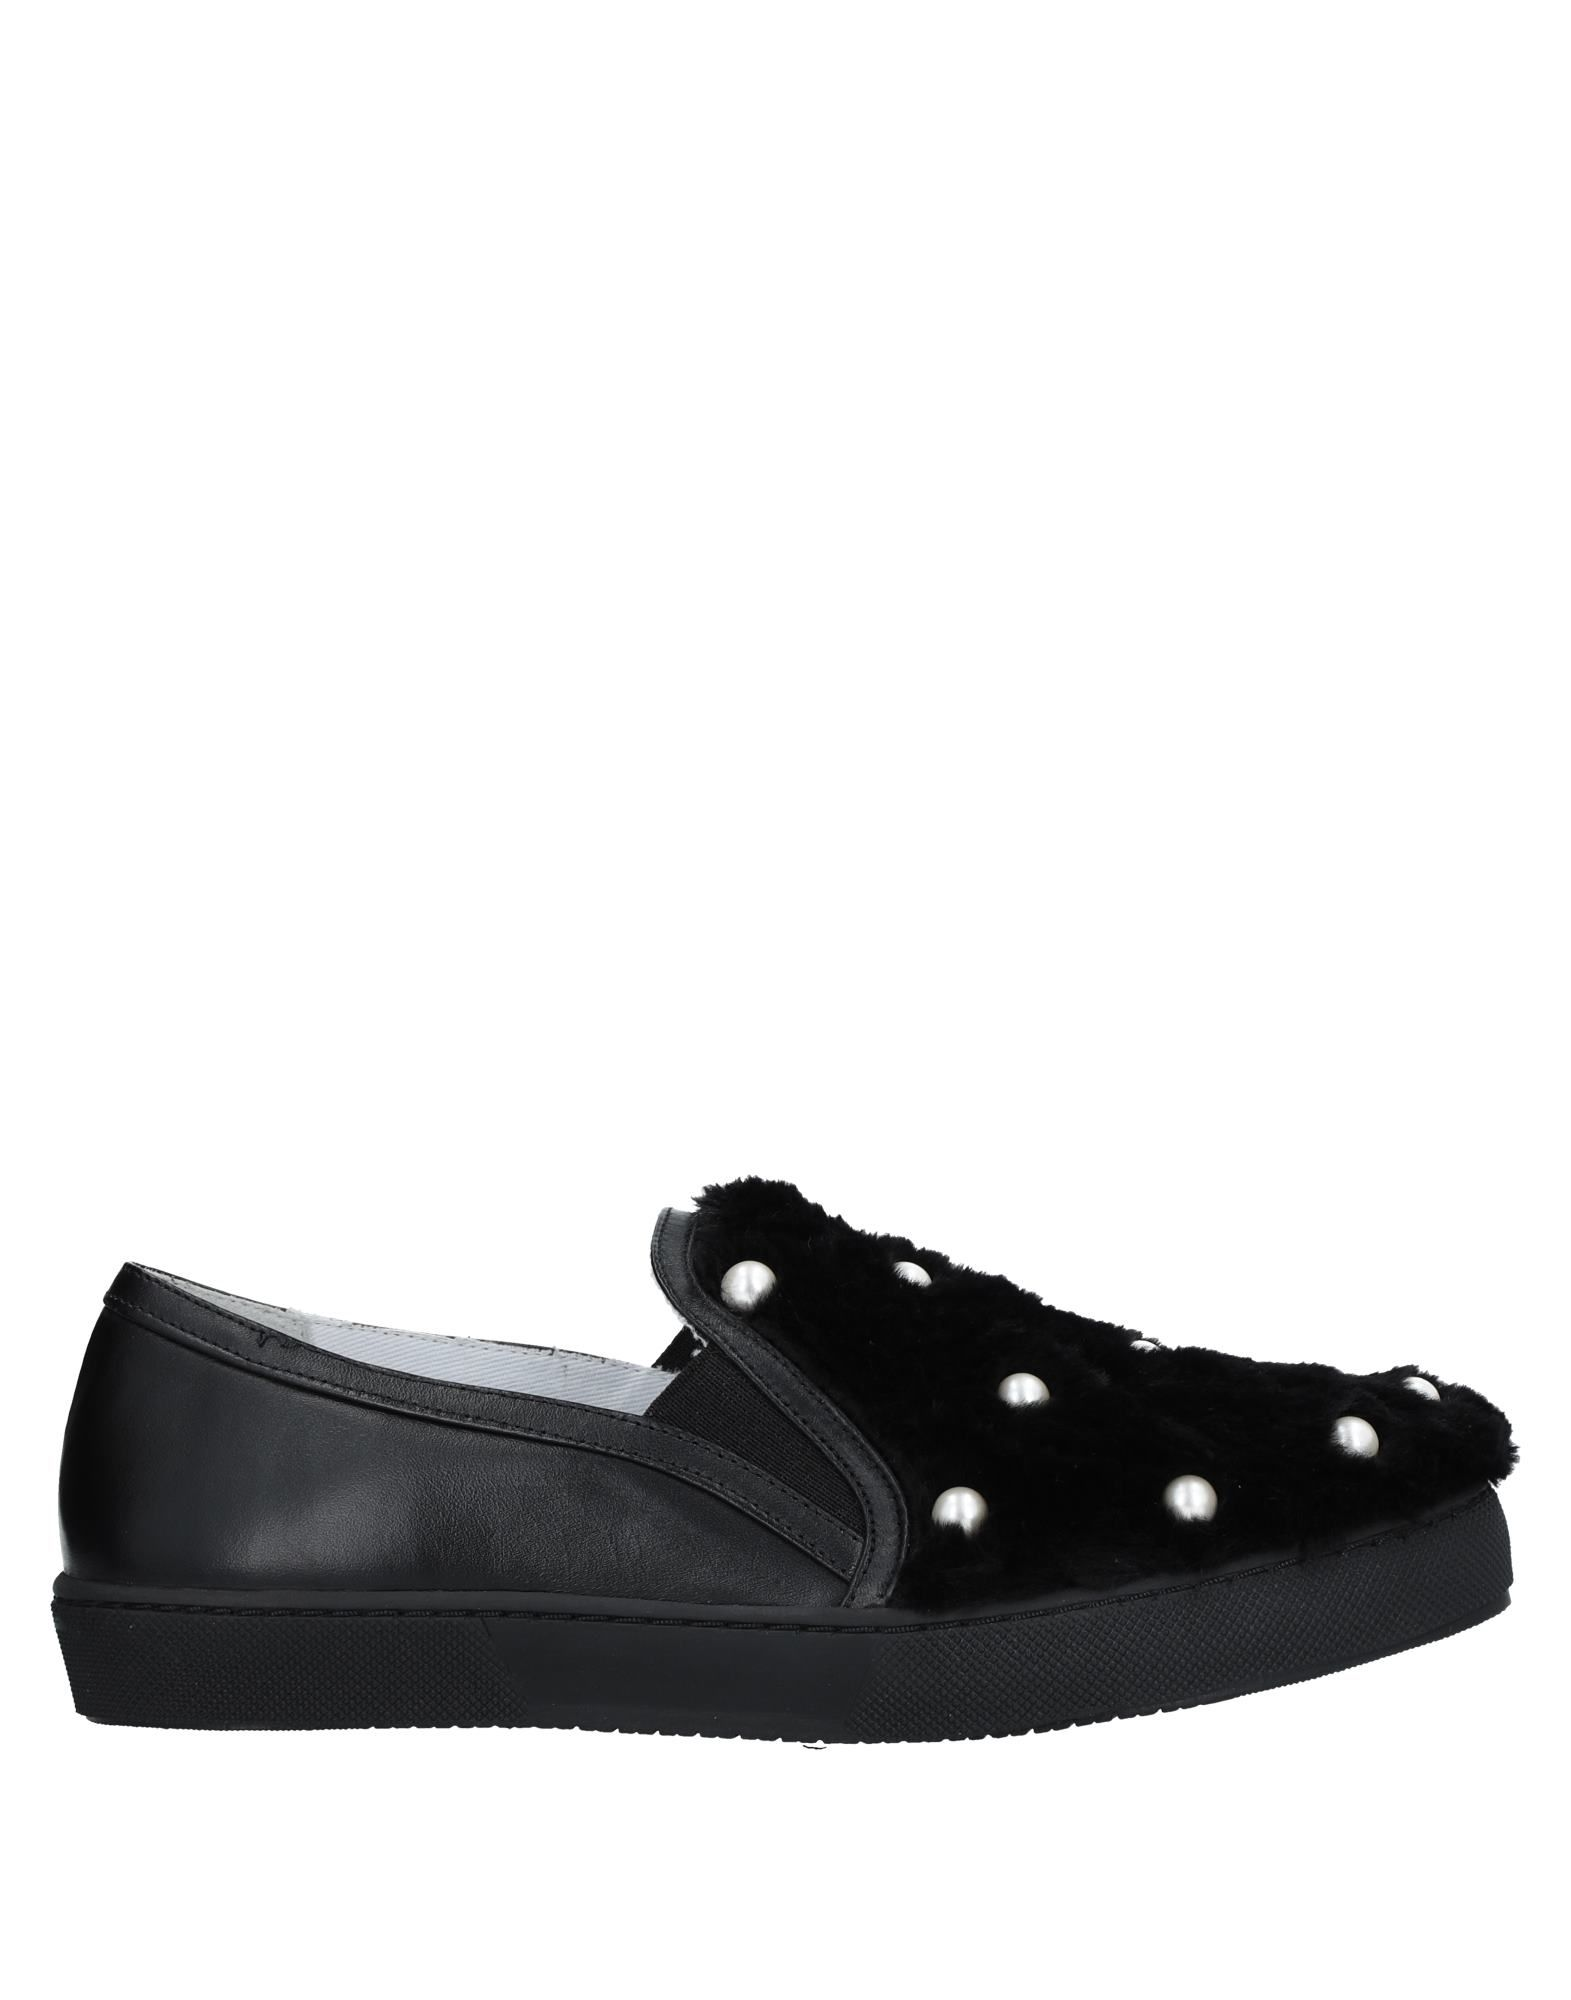 Stilvolle billige Schuhe Boutique 11535858TM Moschino Sneakers Damen  11535858TM Boutique 6a2457